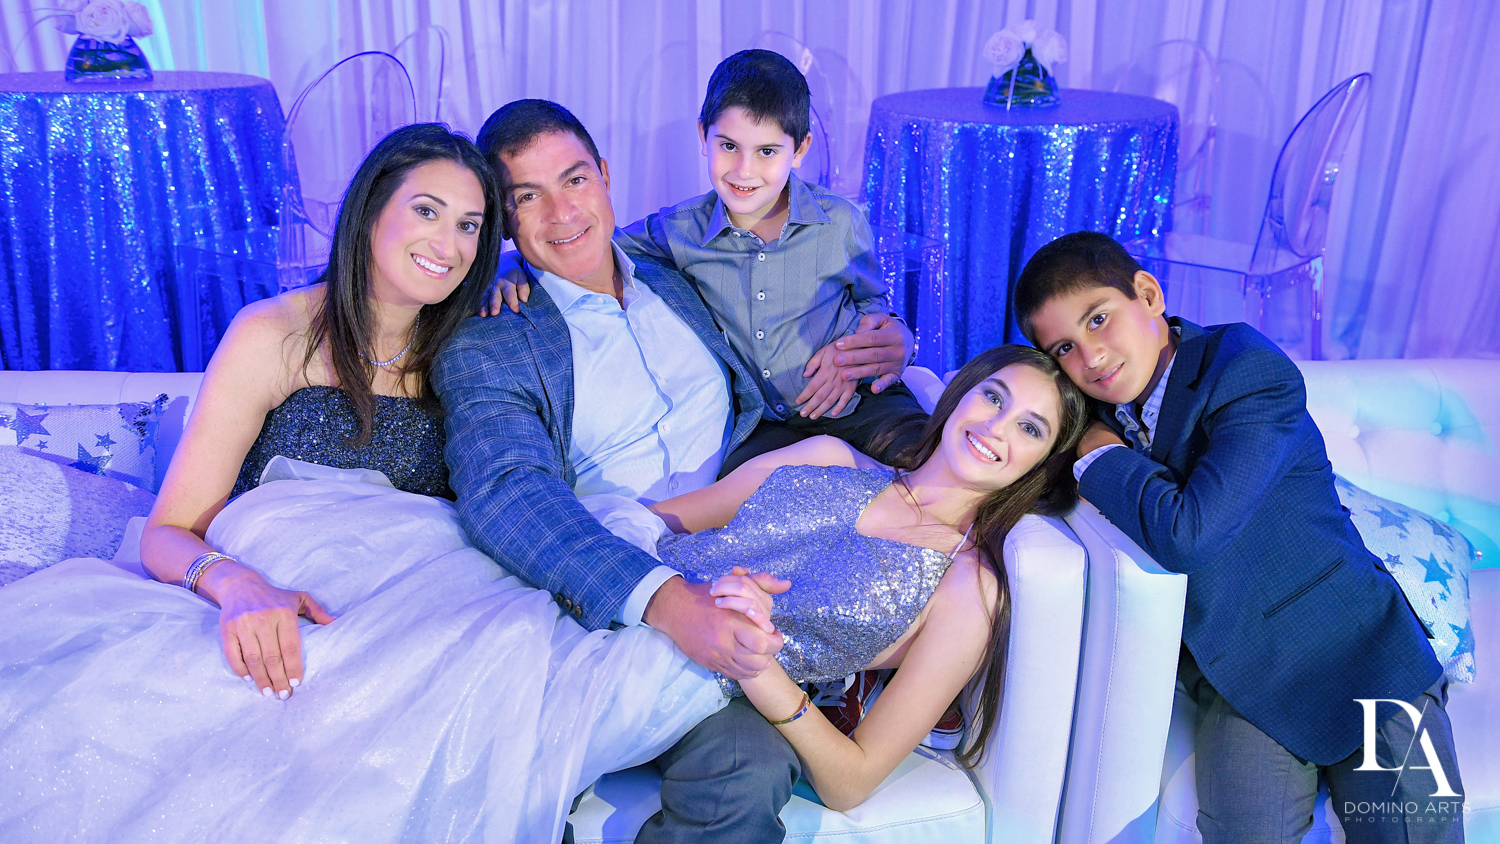 fun family portrait at Trendy Decor Bat Mitzvah at St Andrews Country Club by Domino Arts Photography